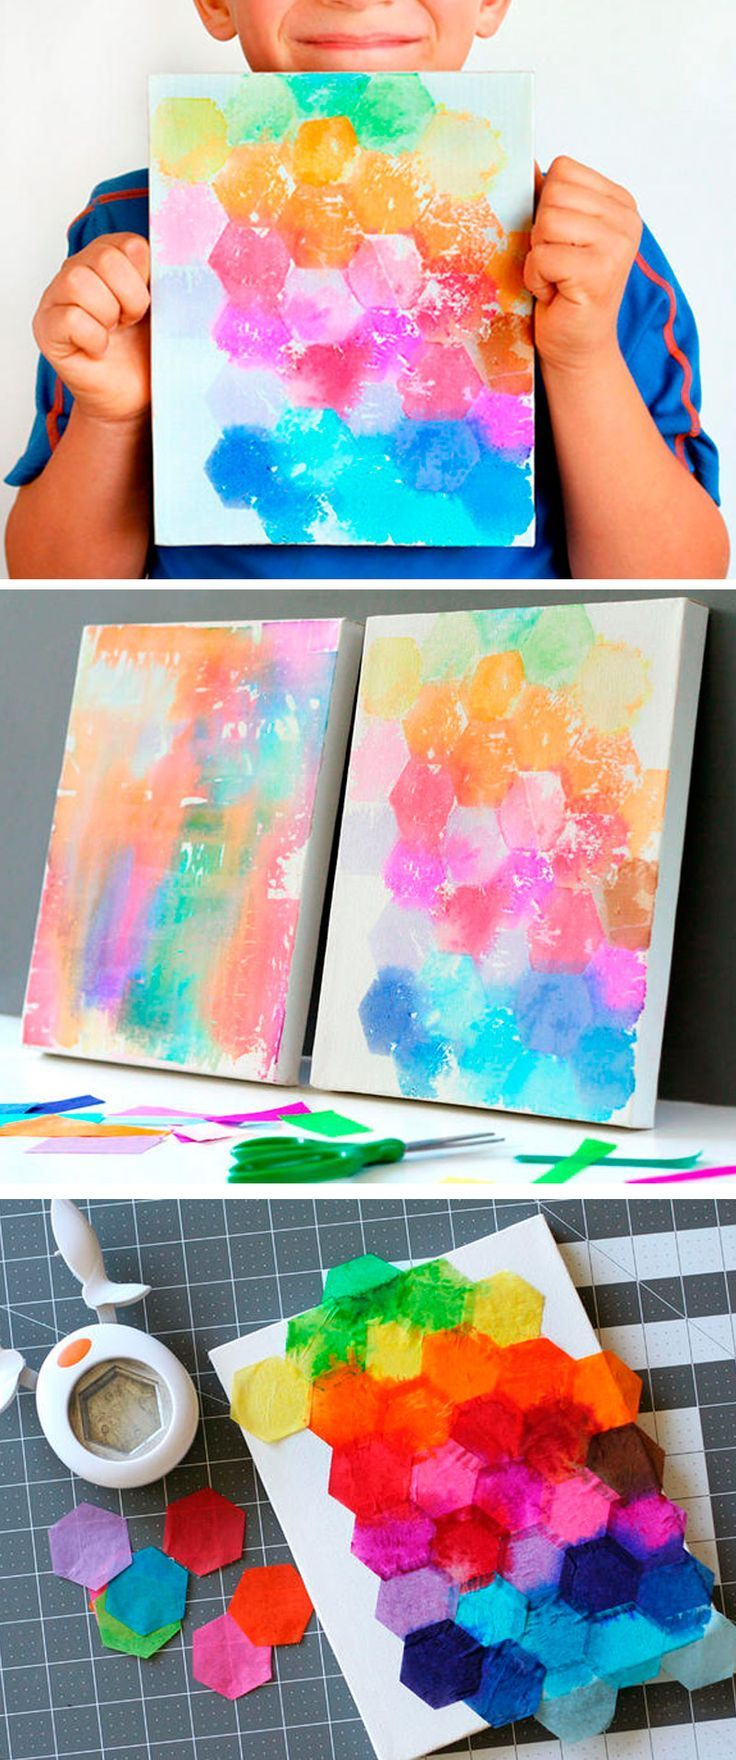 Try this fun art project idea for kids! Just punch shapes